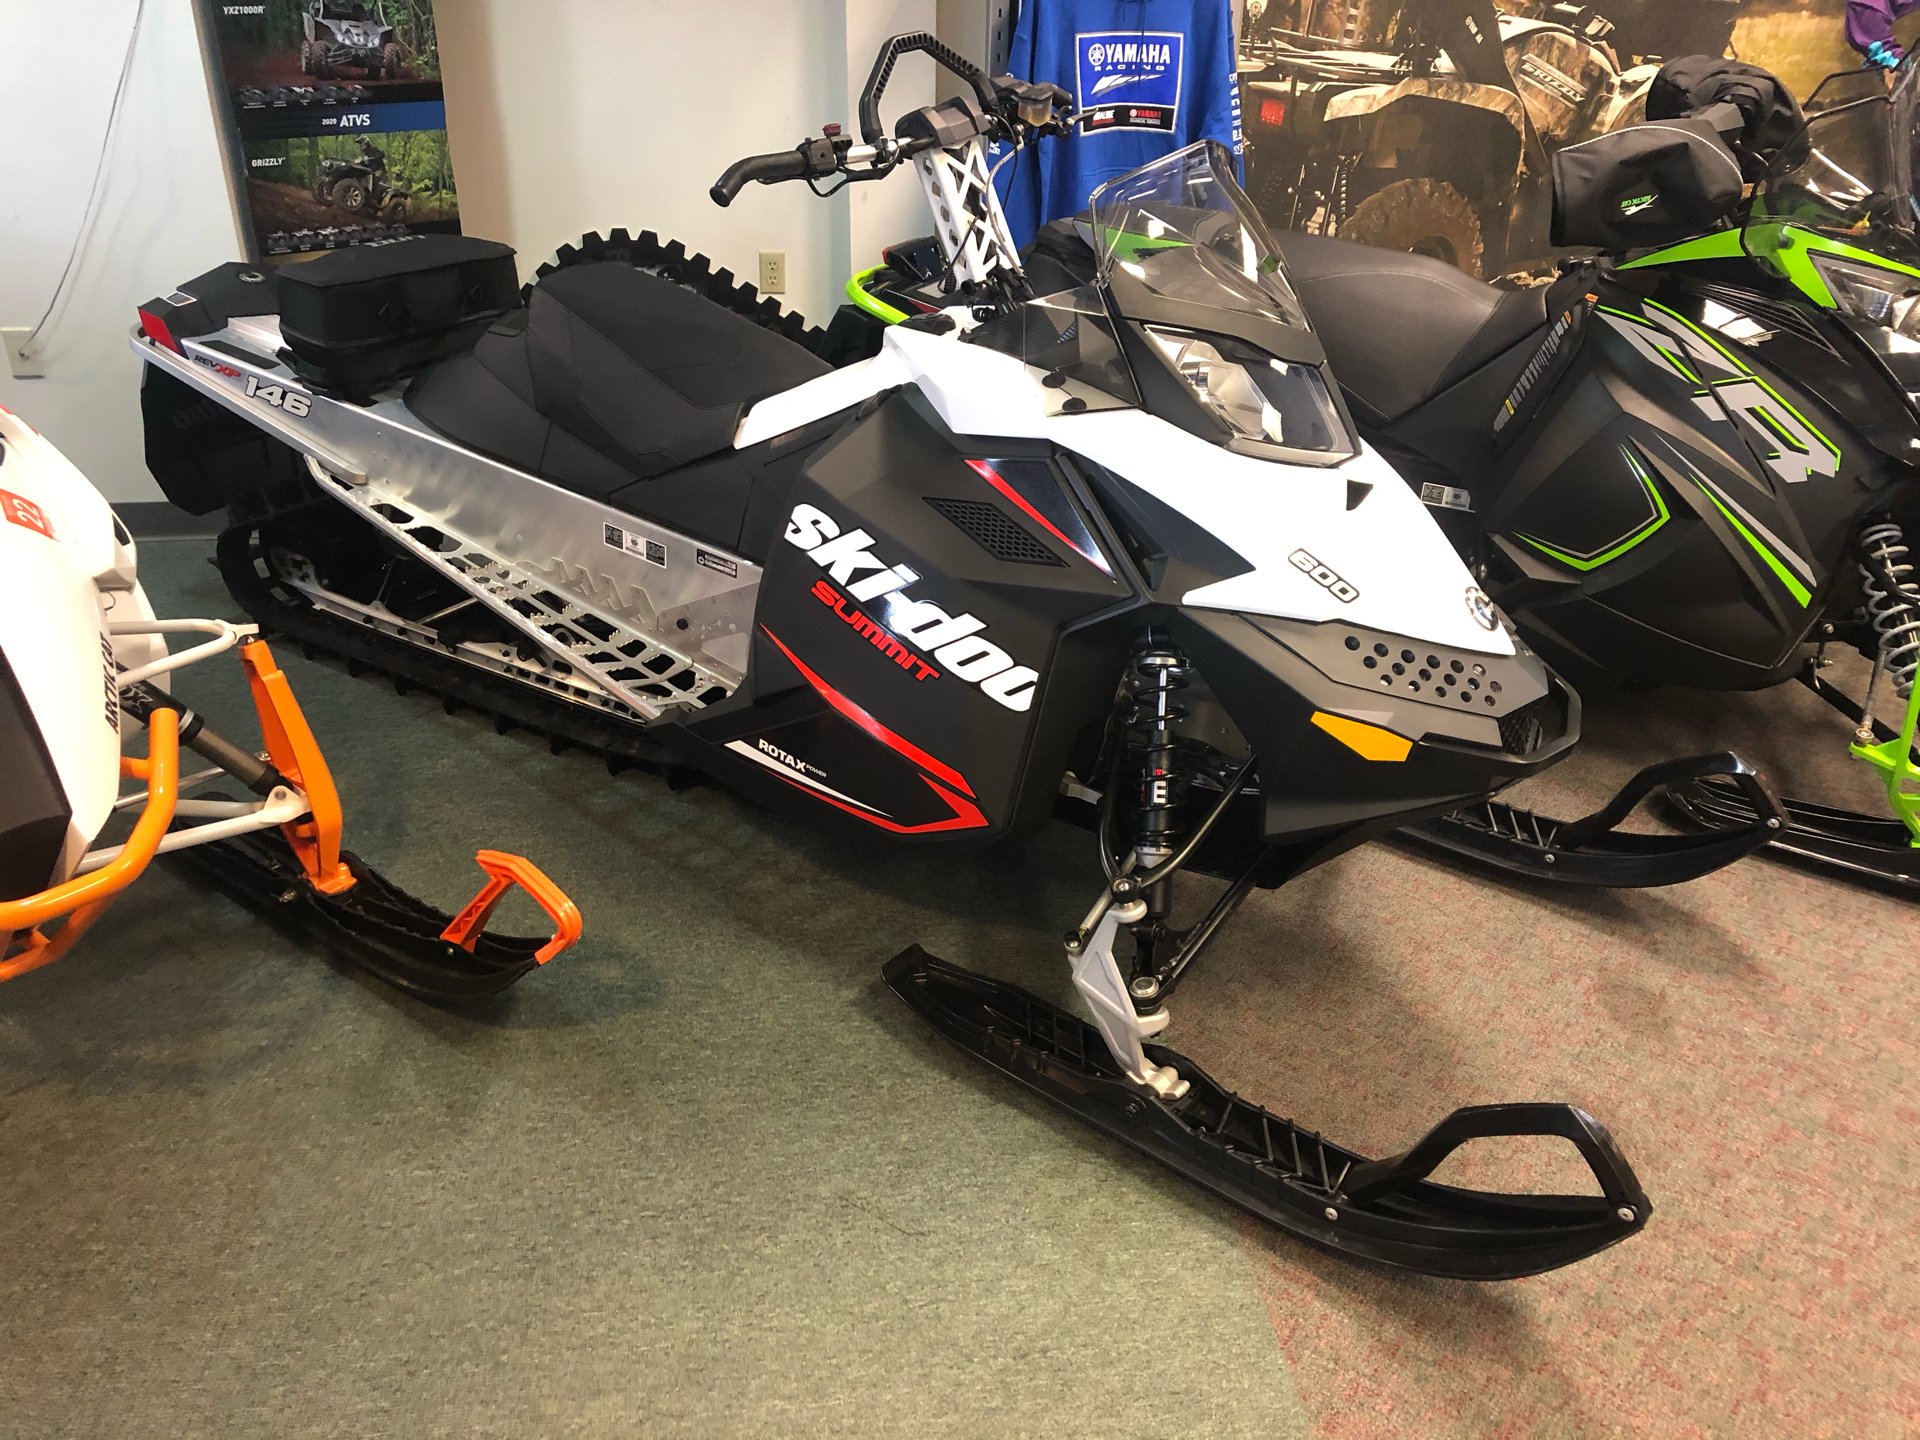 2020 Ski-Doo Summit Sport 600 Carb in Escanaba, Michigan - Photo 1